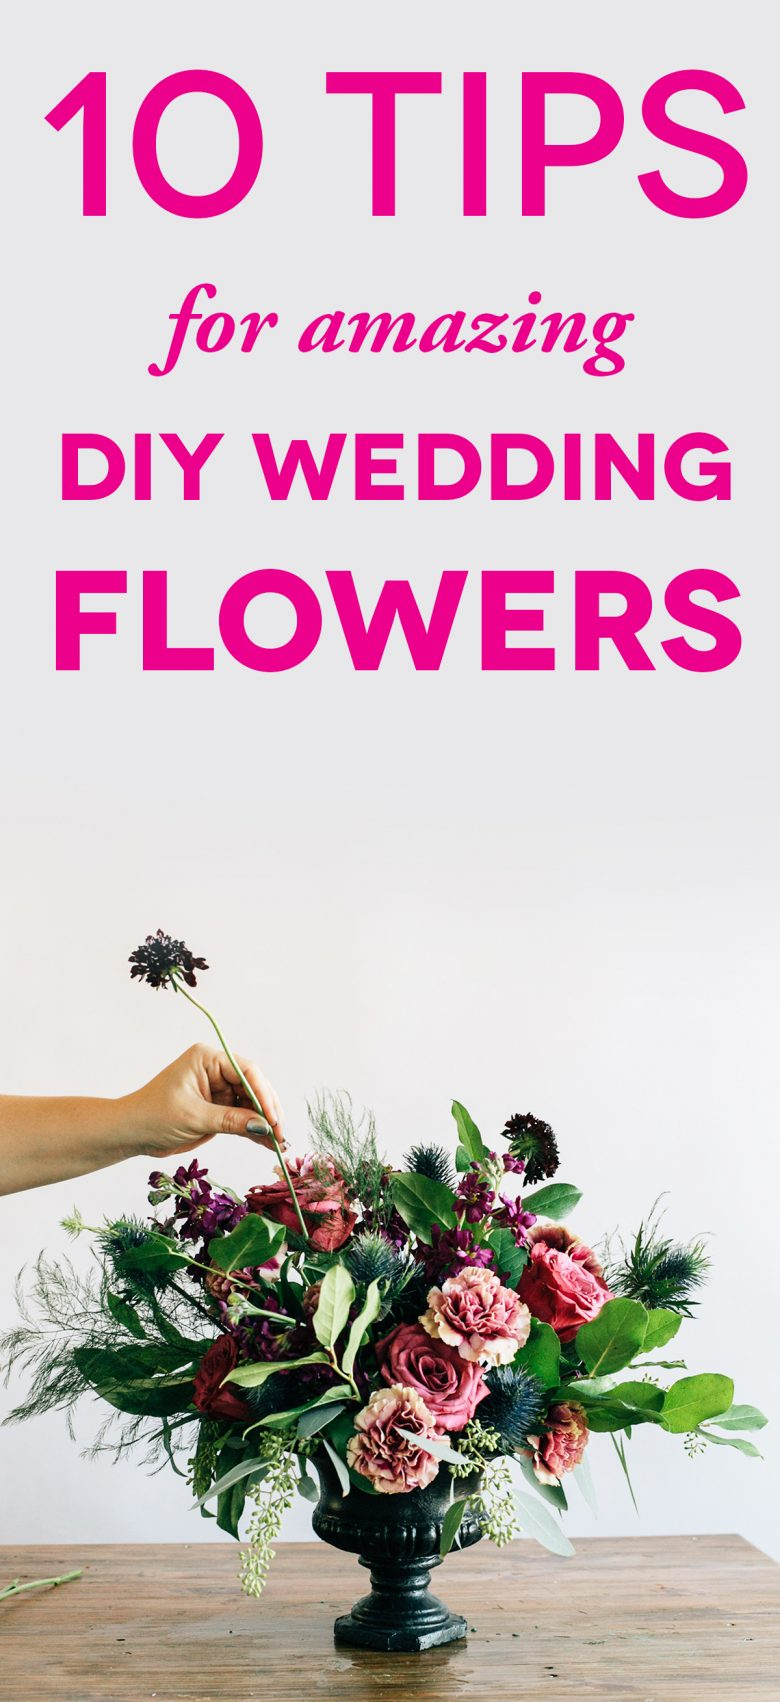 "picture of someone arranging flowers with text ""tips for DIY wedding flowers"""